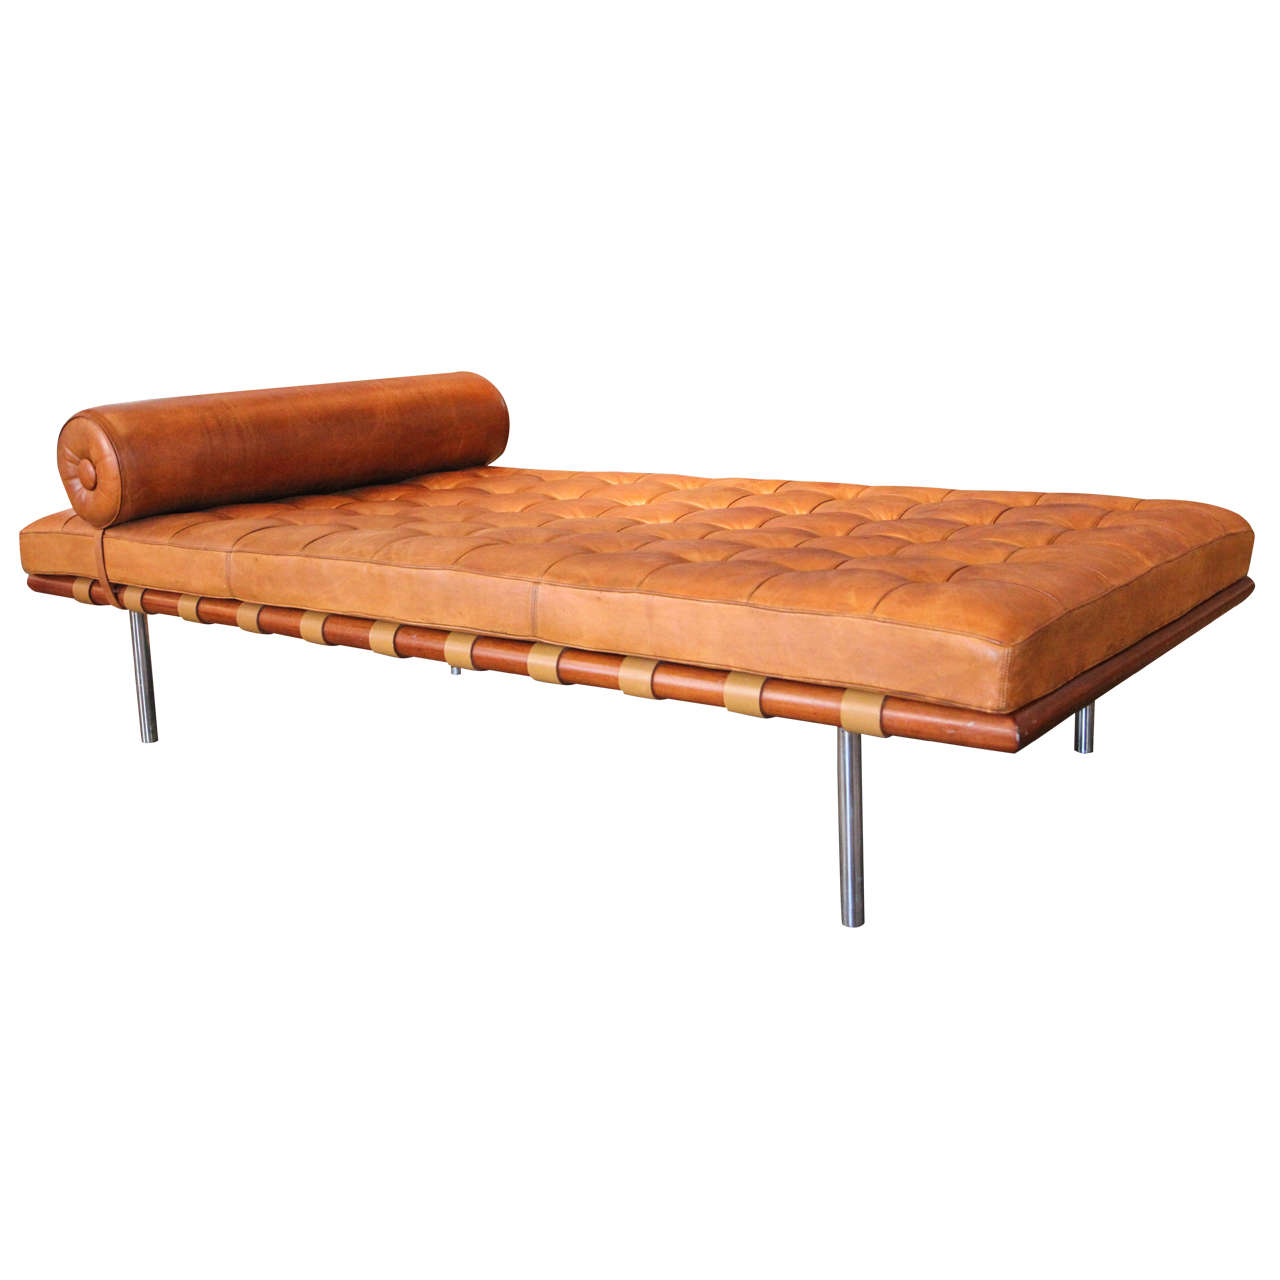 daybed by ludwig mies van der rohe at 1stdibs. Black Bedroom Furniture Sets. Home Design Ideas